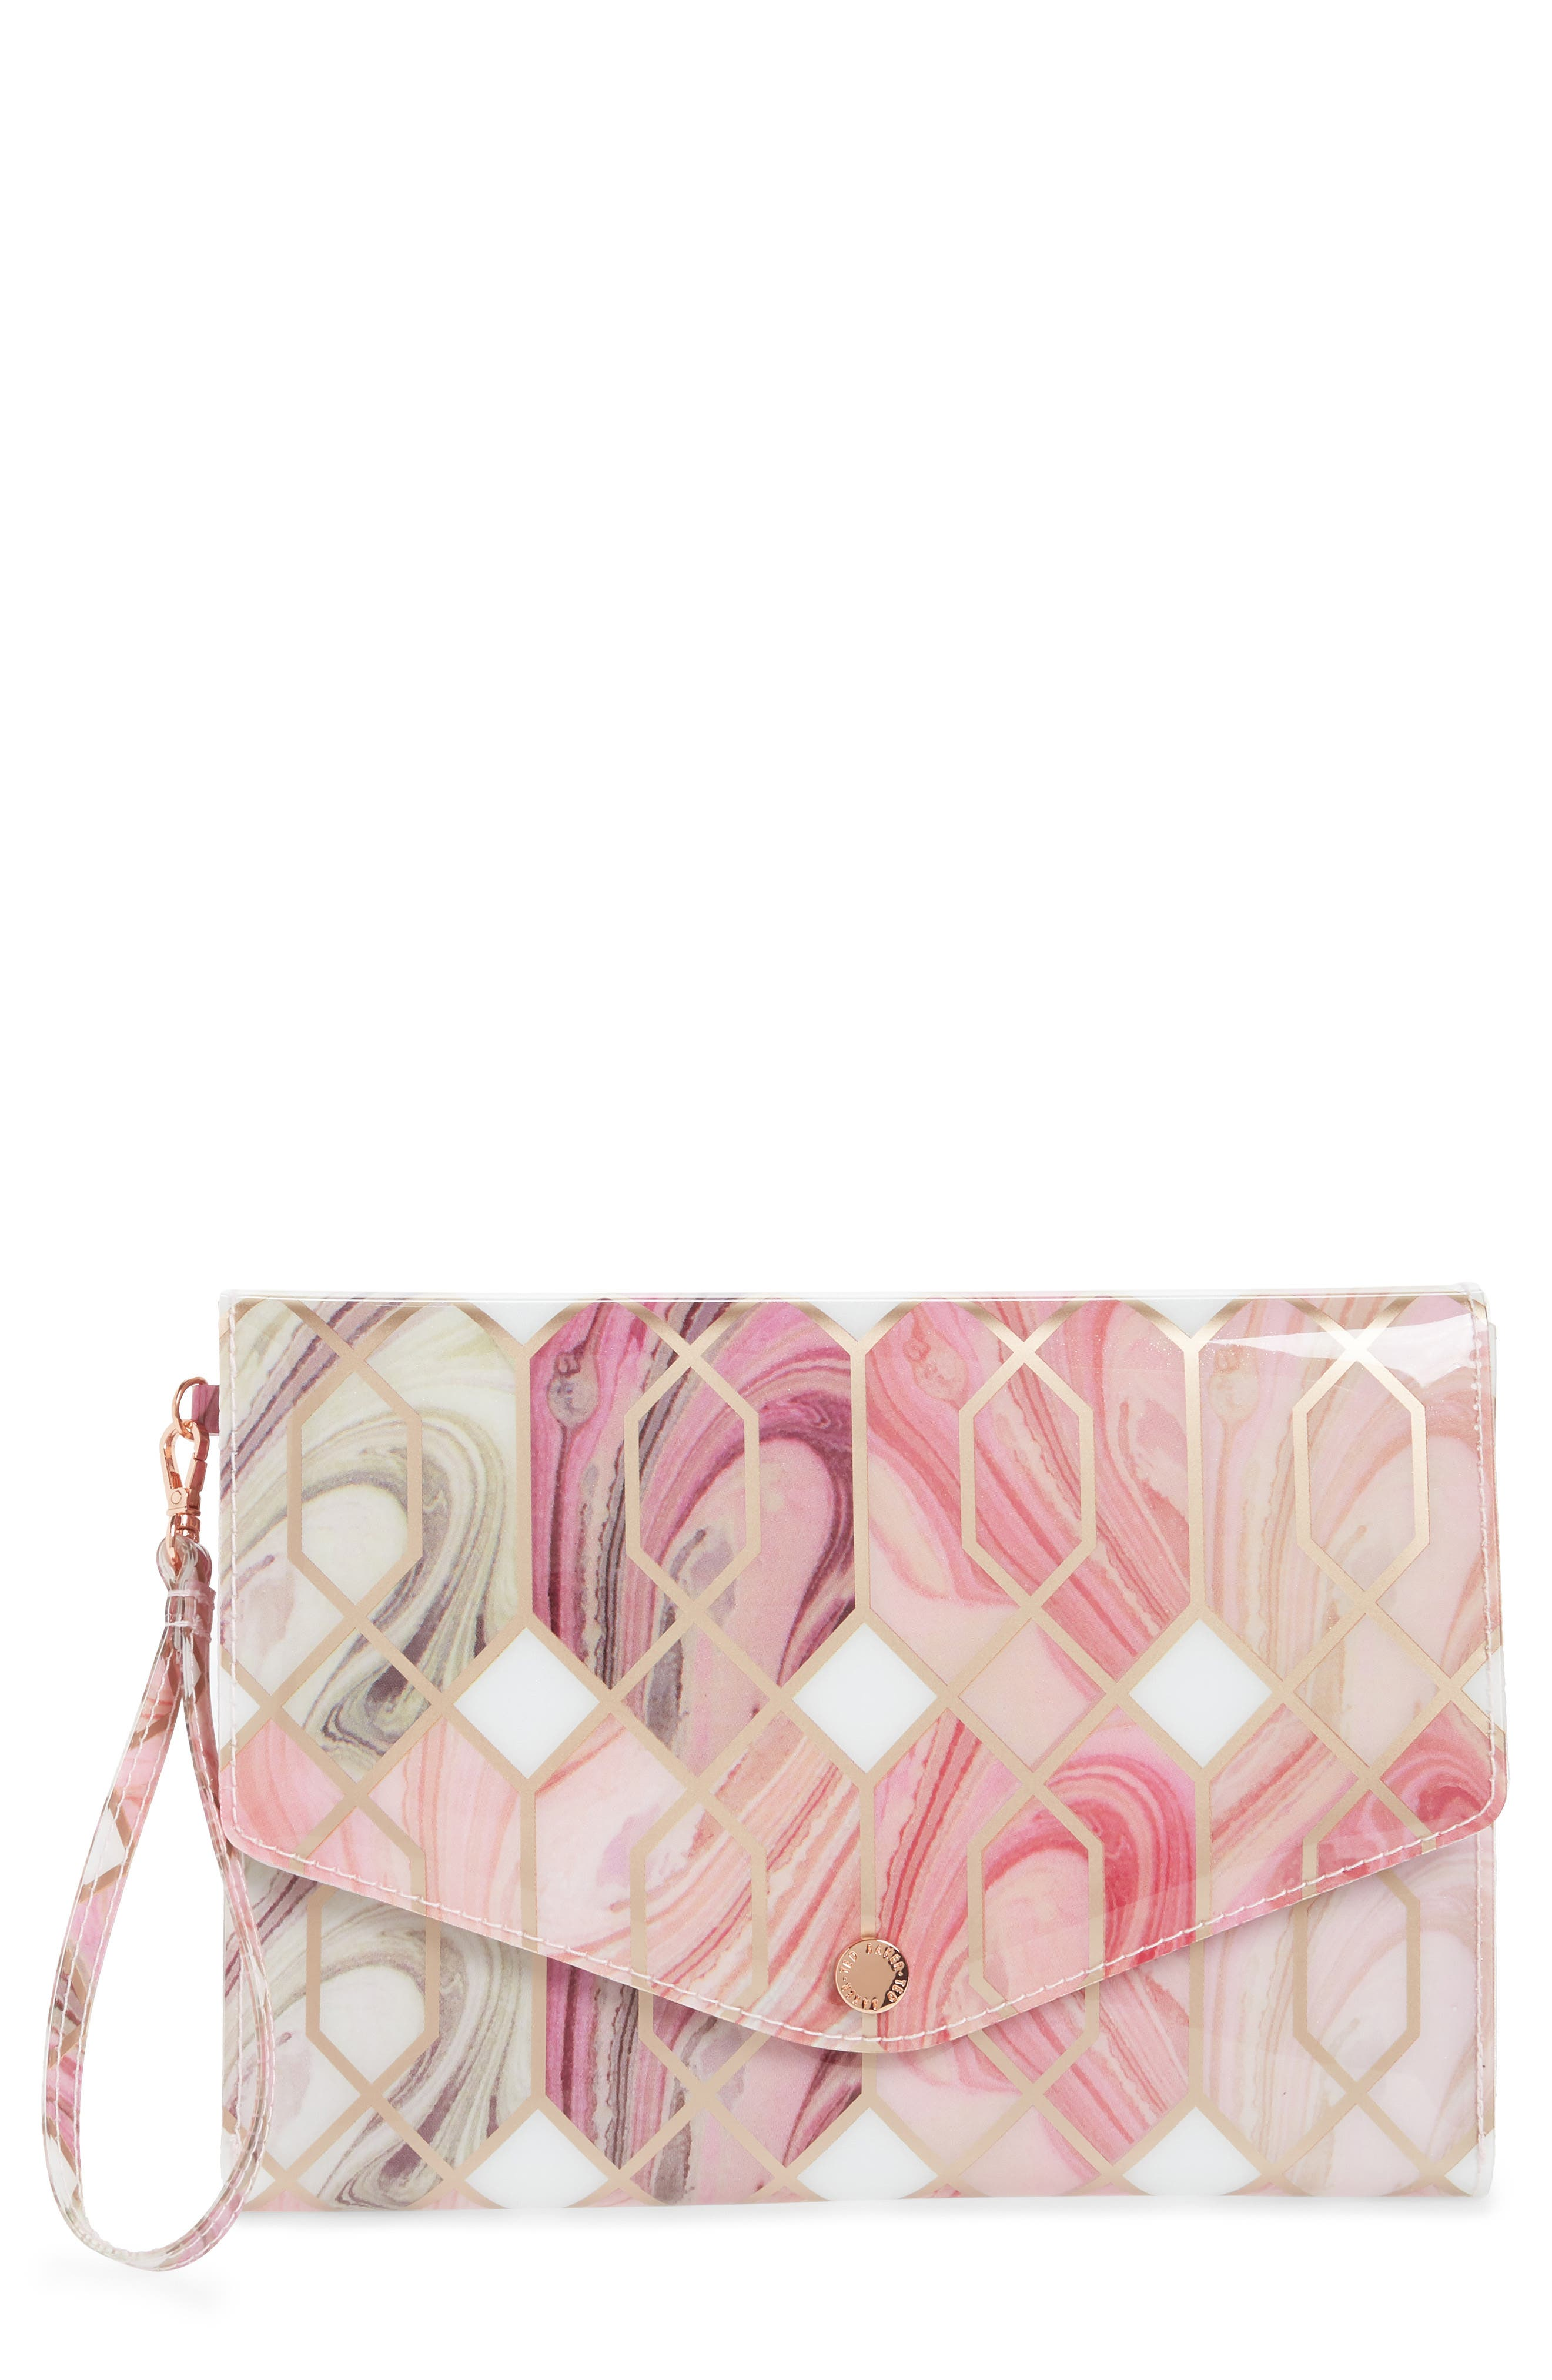 Sea of Clouds Envelope Clutch,                             Main thumbnail 1, color,                             White